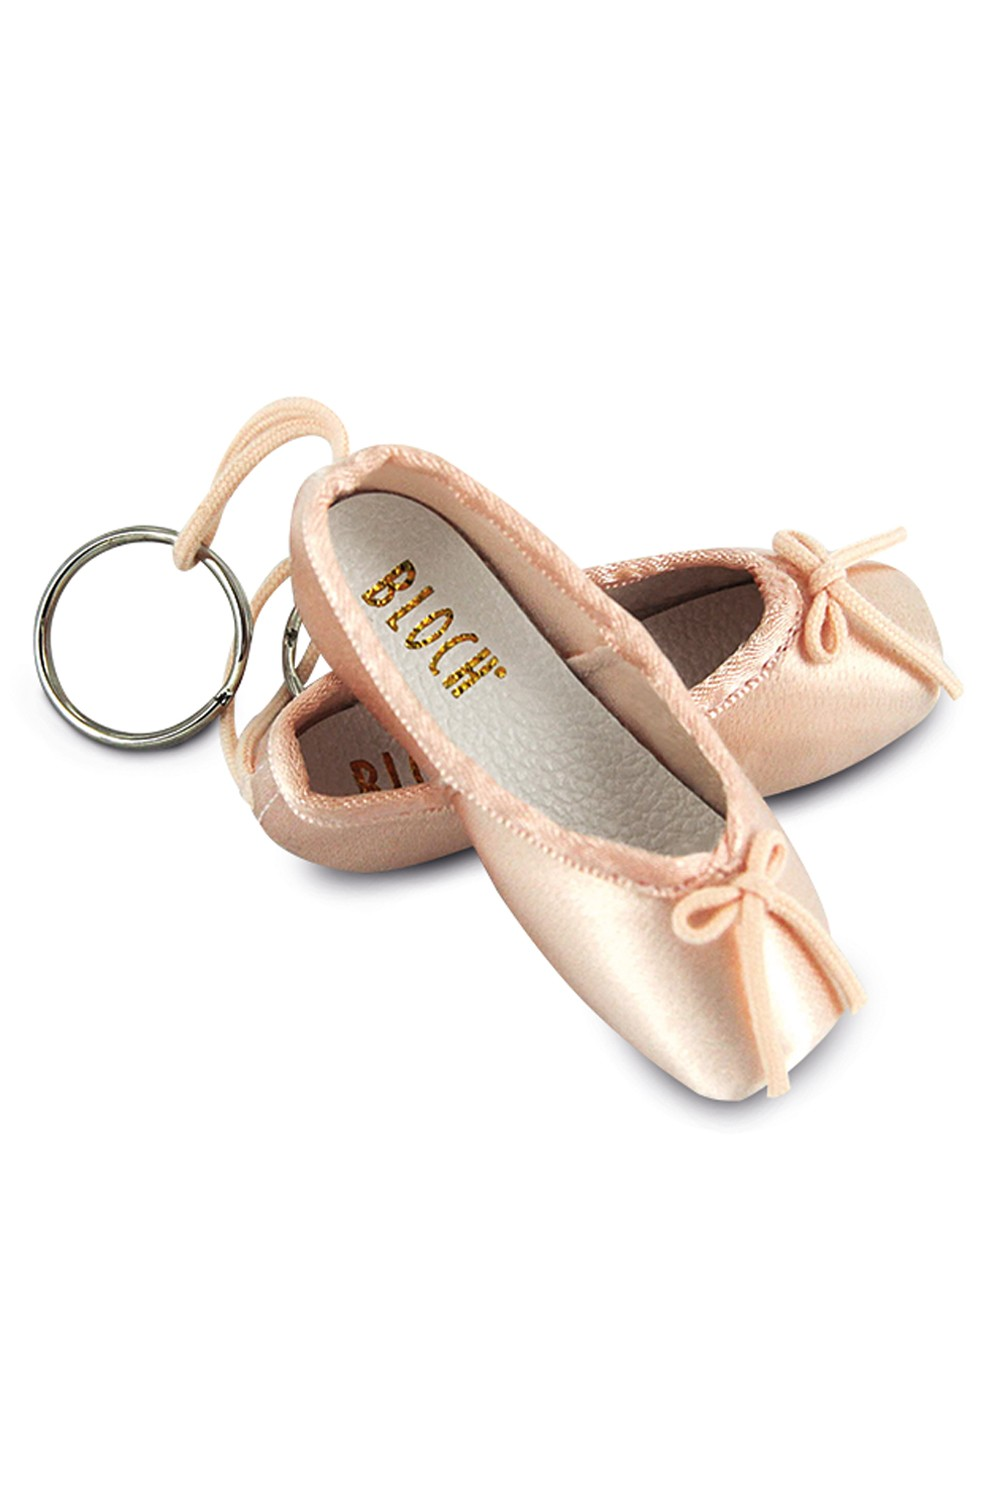 Mini Pointe Shoe Pak Dance Shoes Accessories